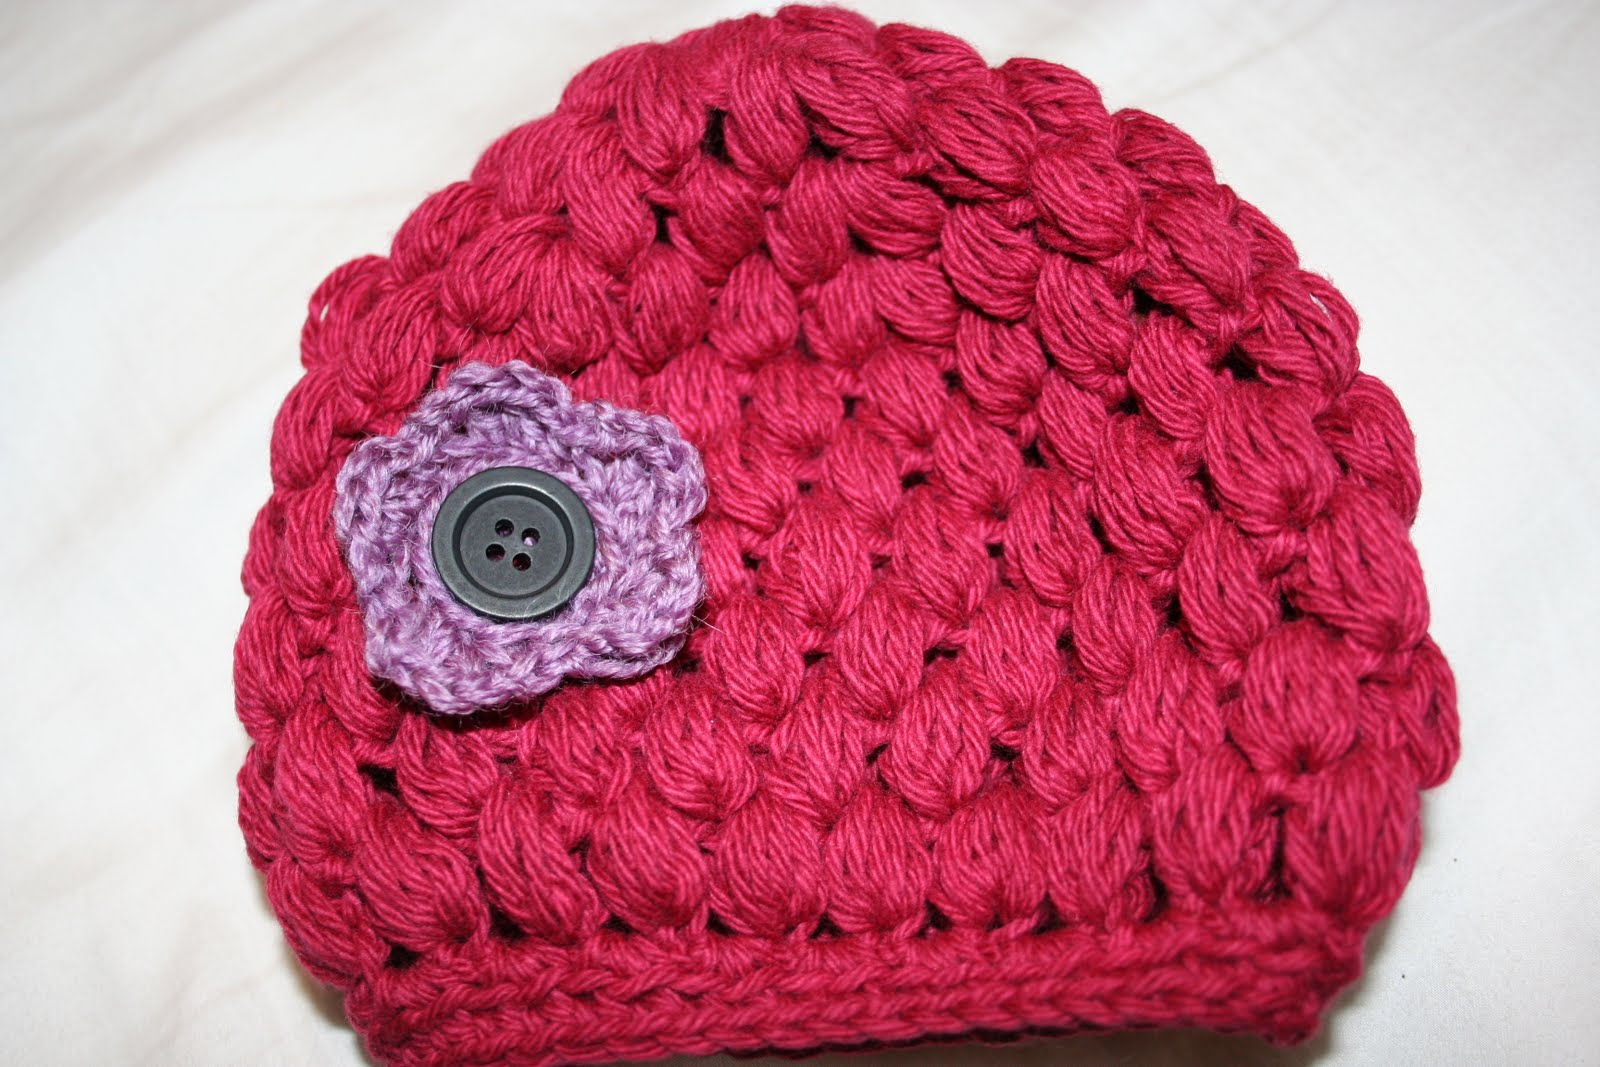 Knit Popcorn Stitch Hat Pattern : Knit-Whits: Puff Stitch Crocheted Baby Hat